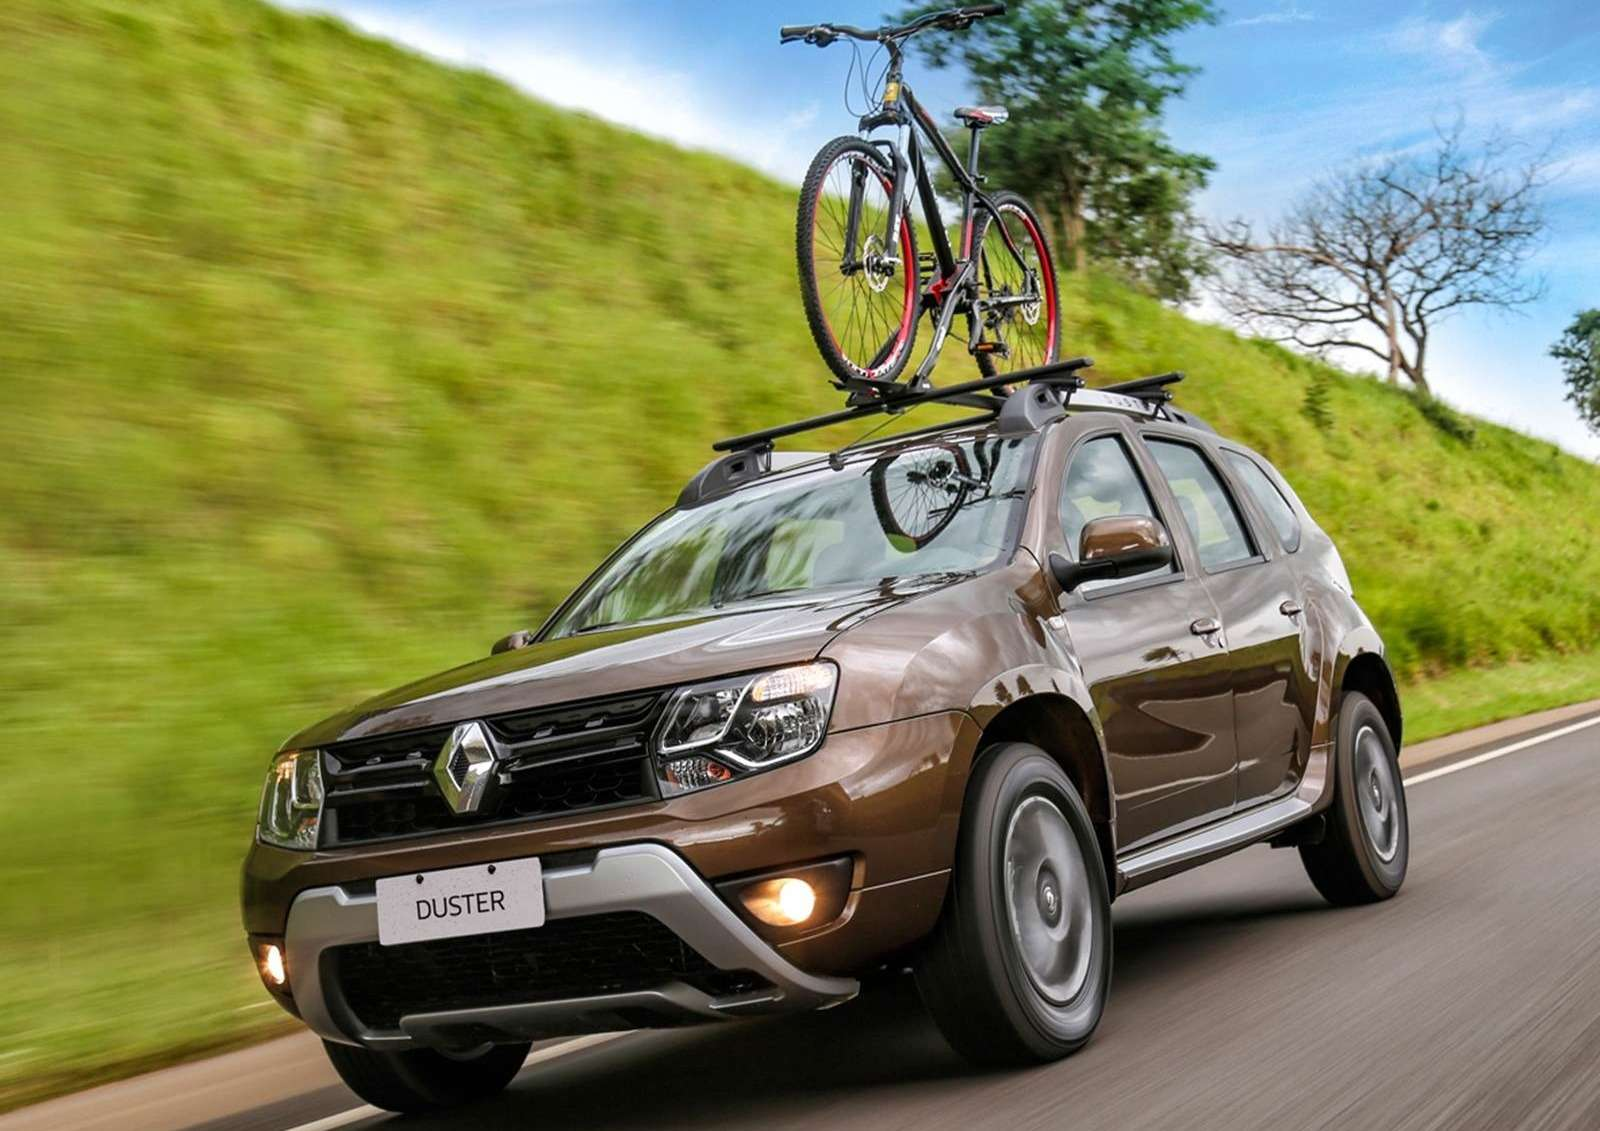 2016-renault-duster-launched-with-new-look-better-economy-in-brazil-photo-gallery_8